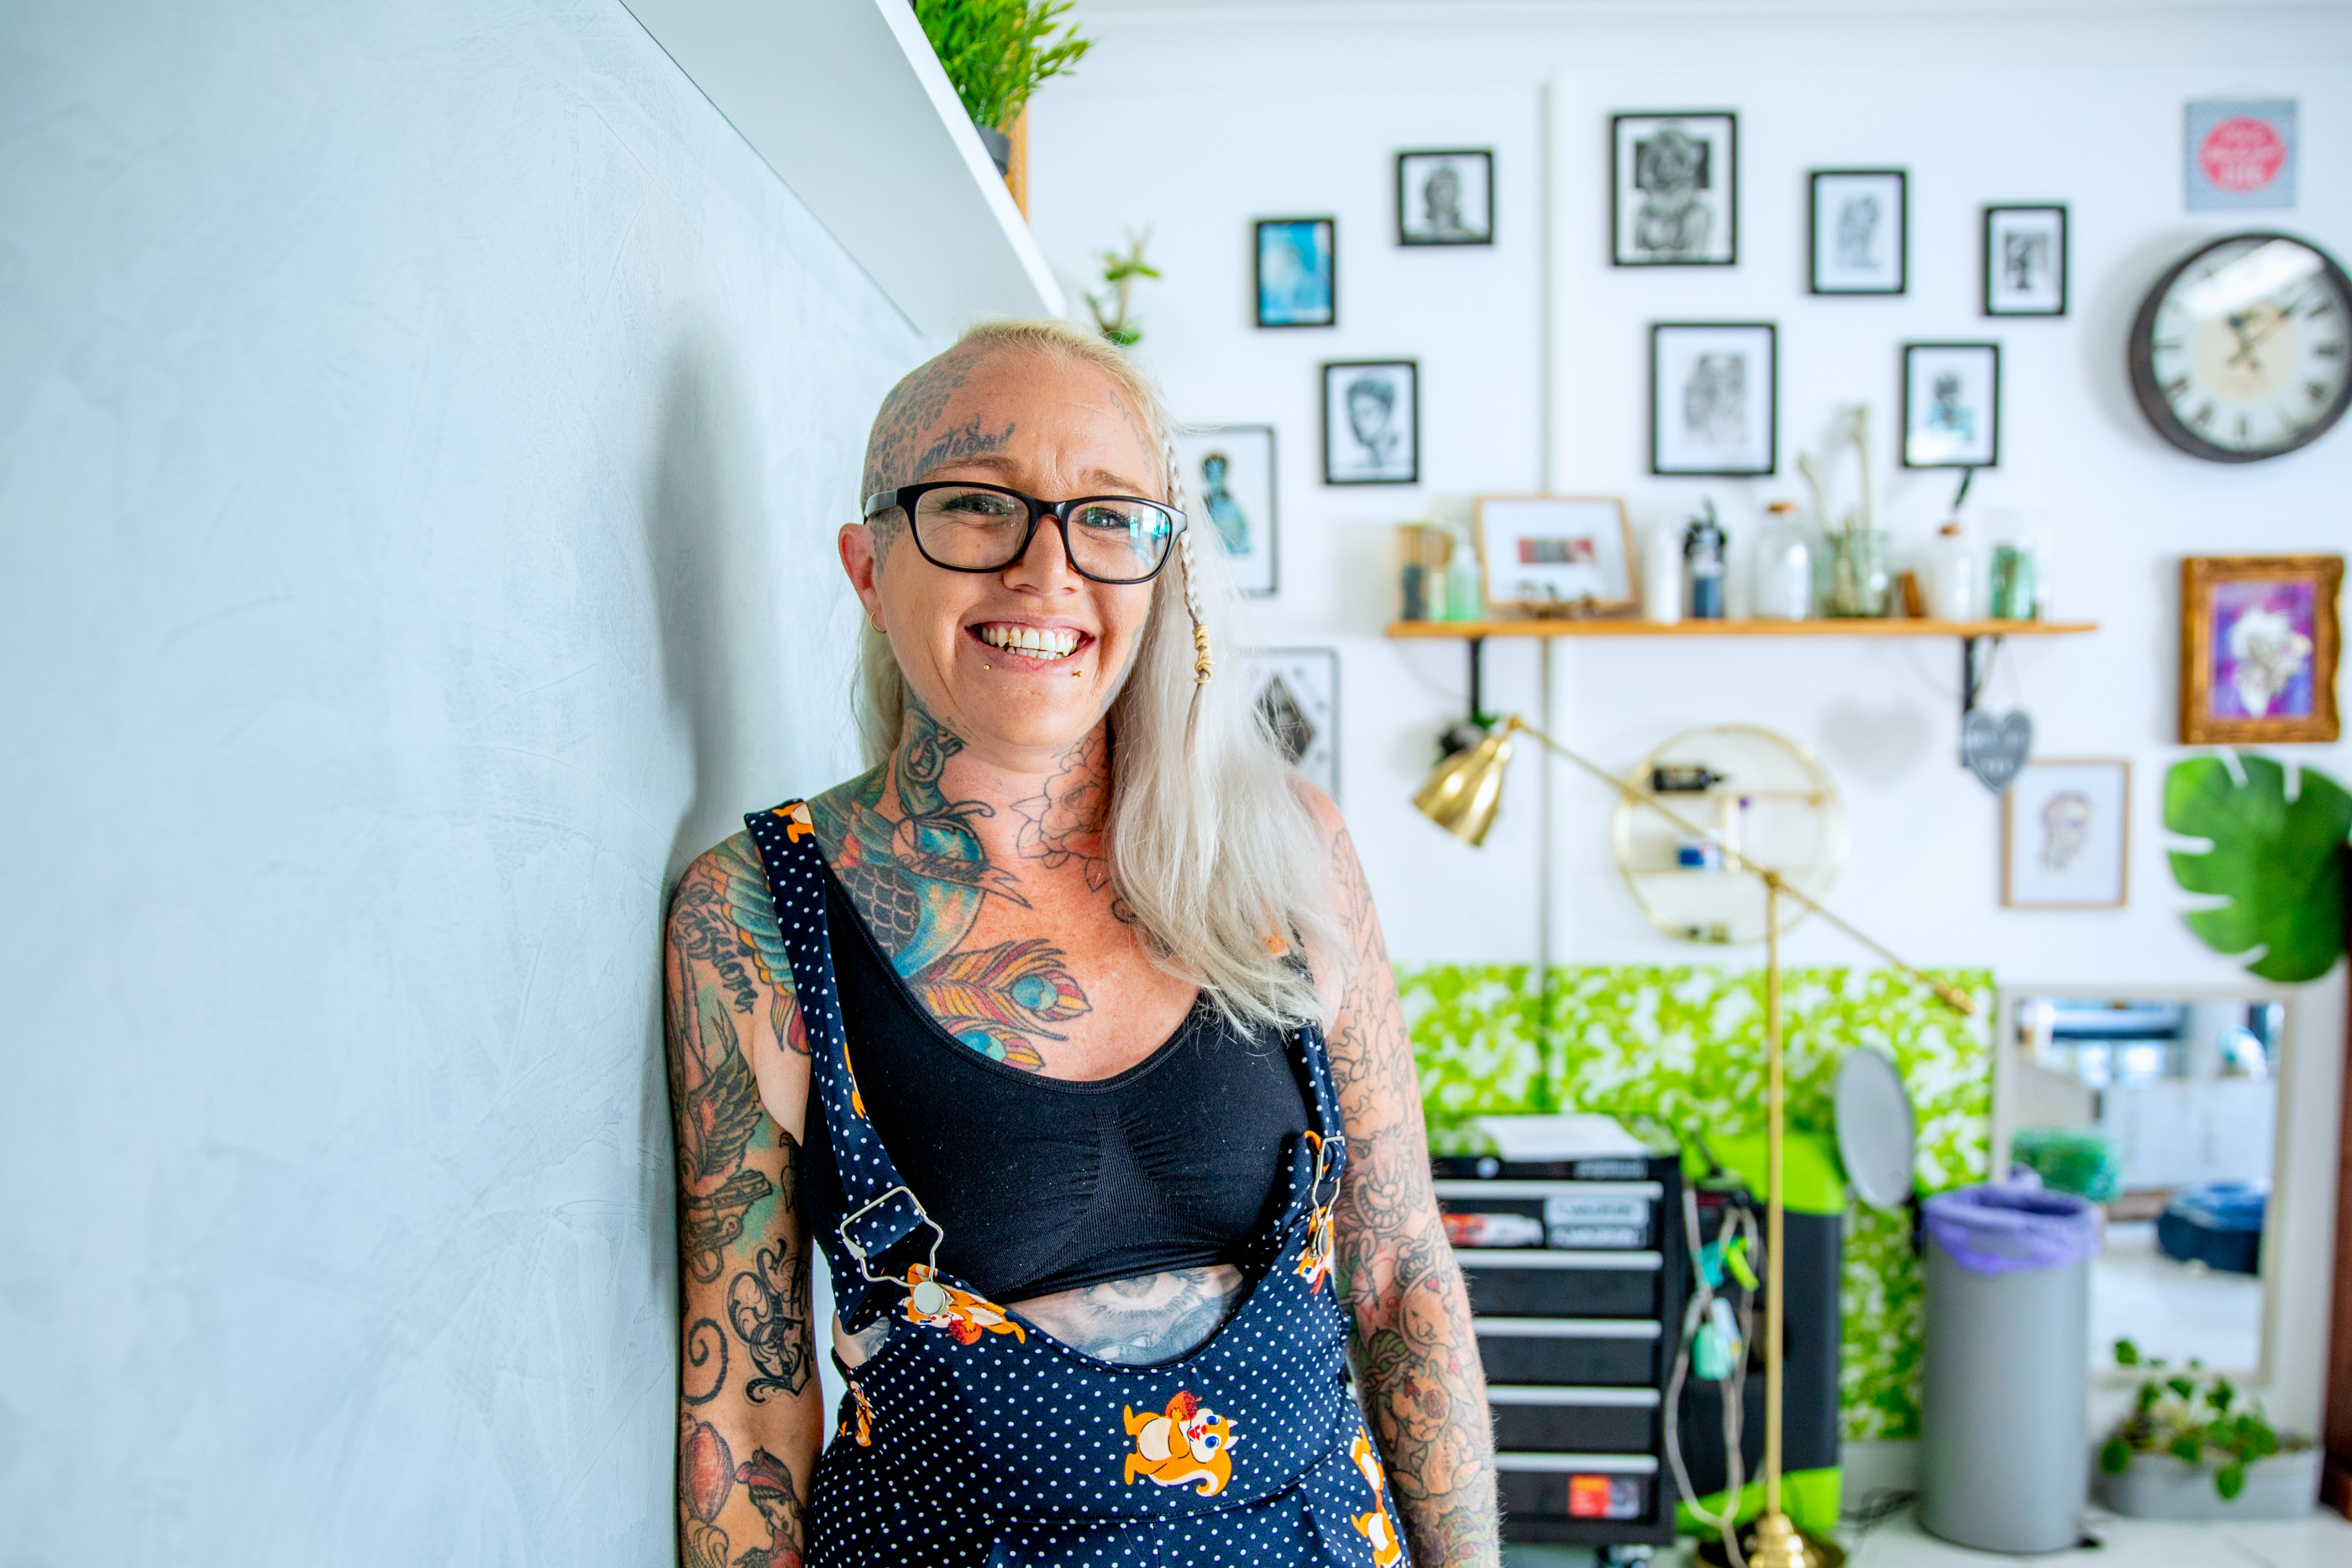 Two Australian women show a day in the life of a tattoo artist. Dancing, designing, tattooing and communicating and creating in a suburban tattoo shop.